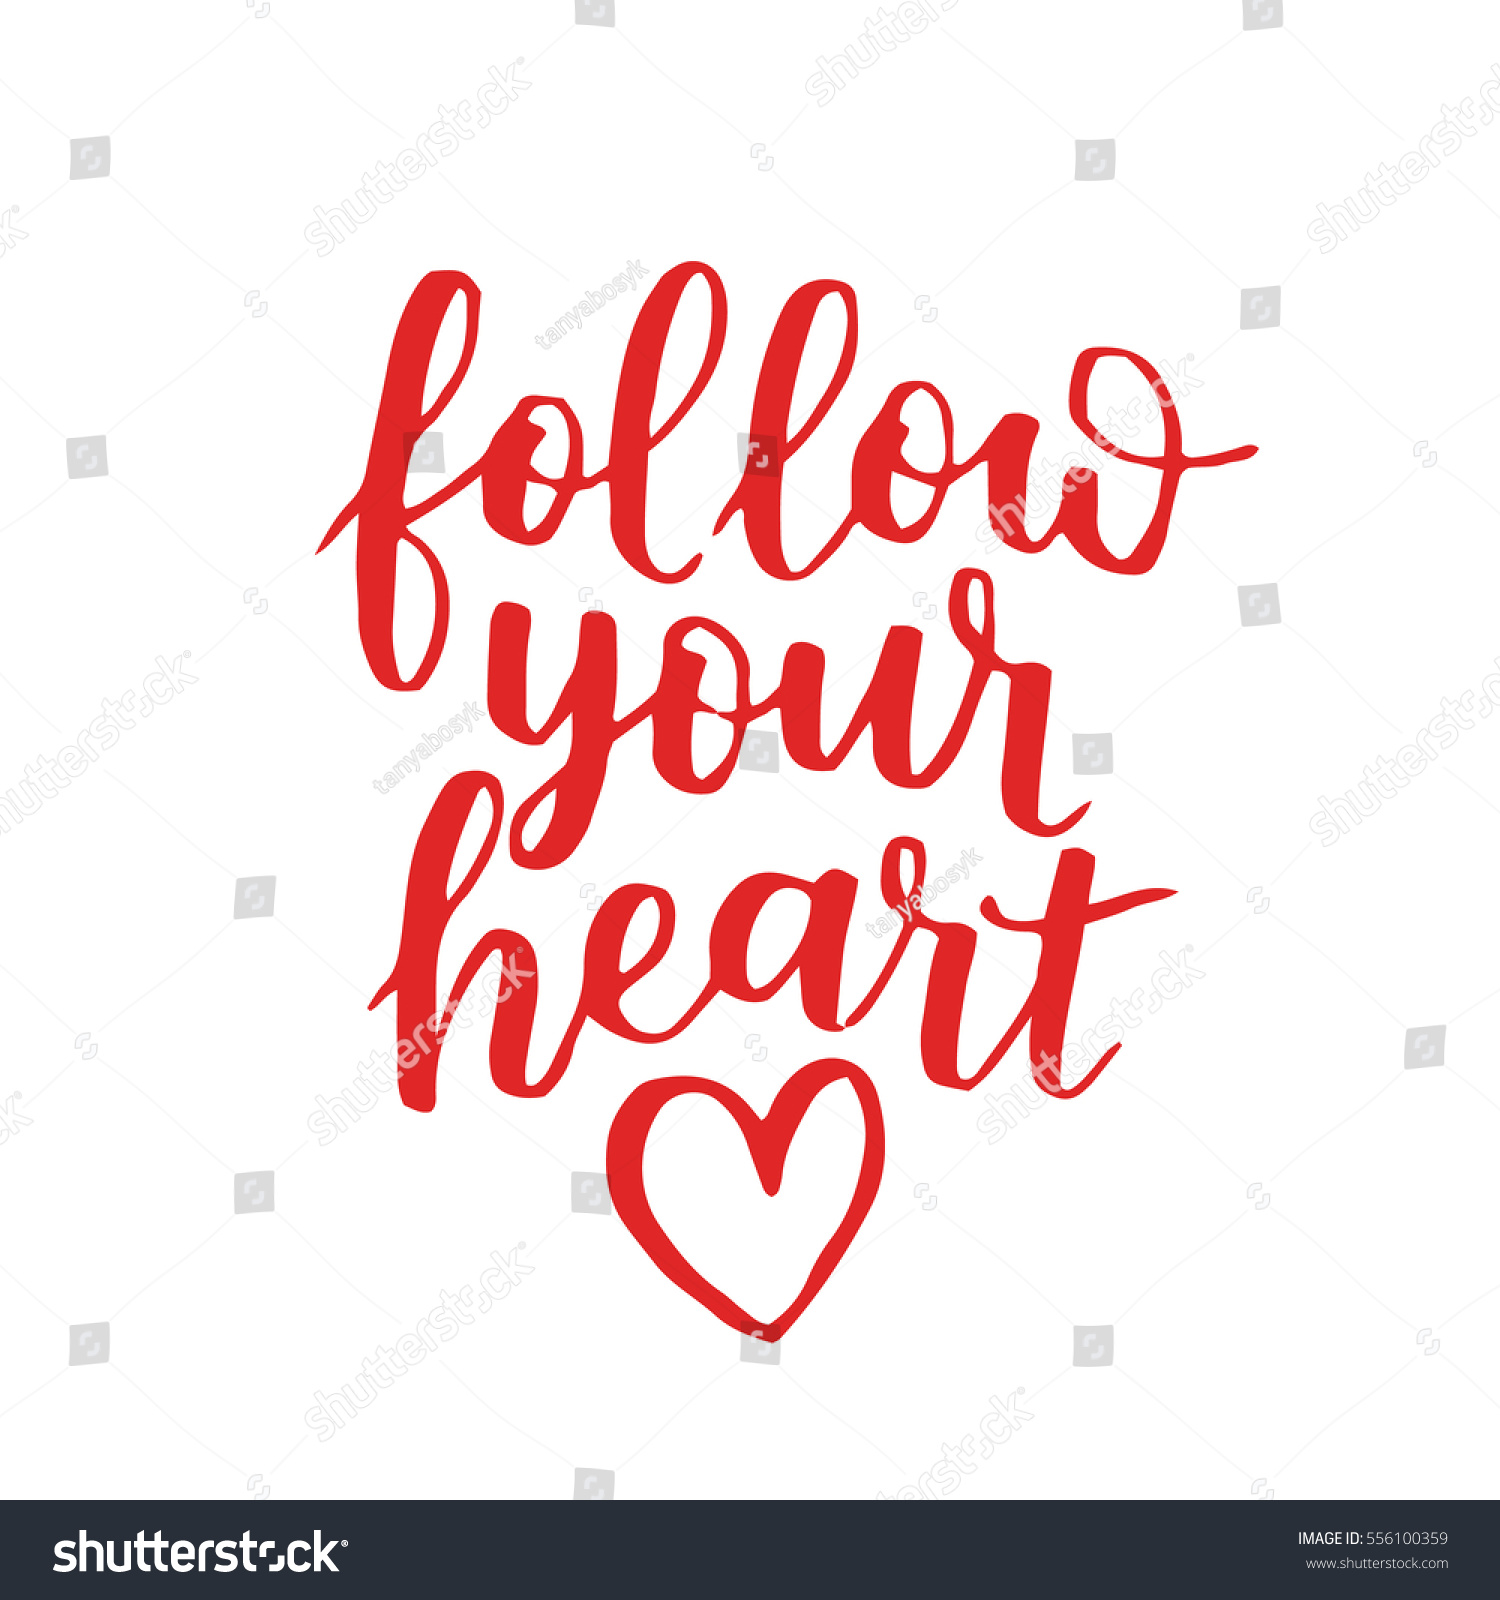 Handwritten Lettering Quote About Love Valentines Stock Photo (Photo ...